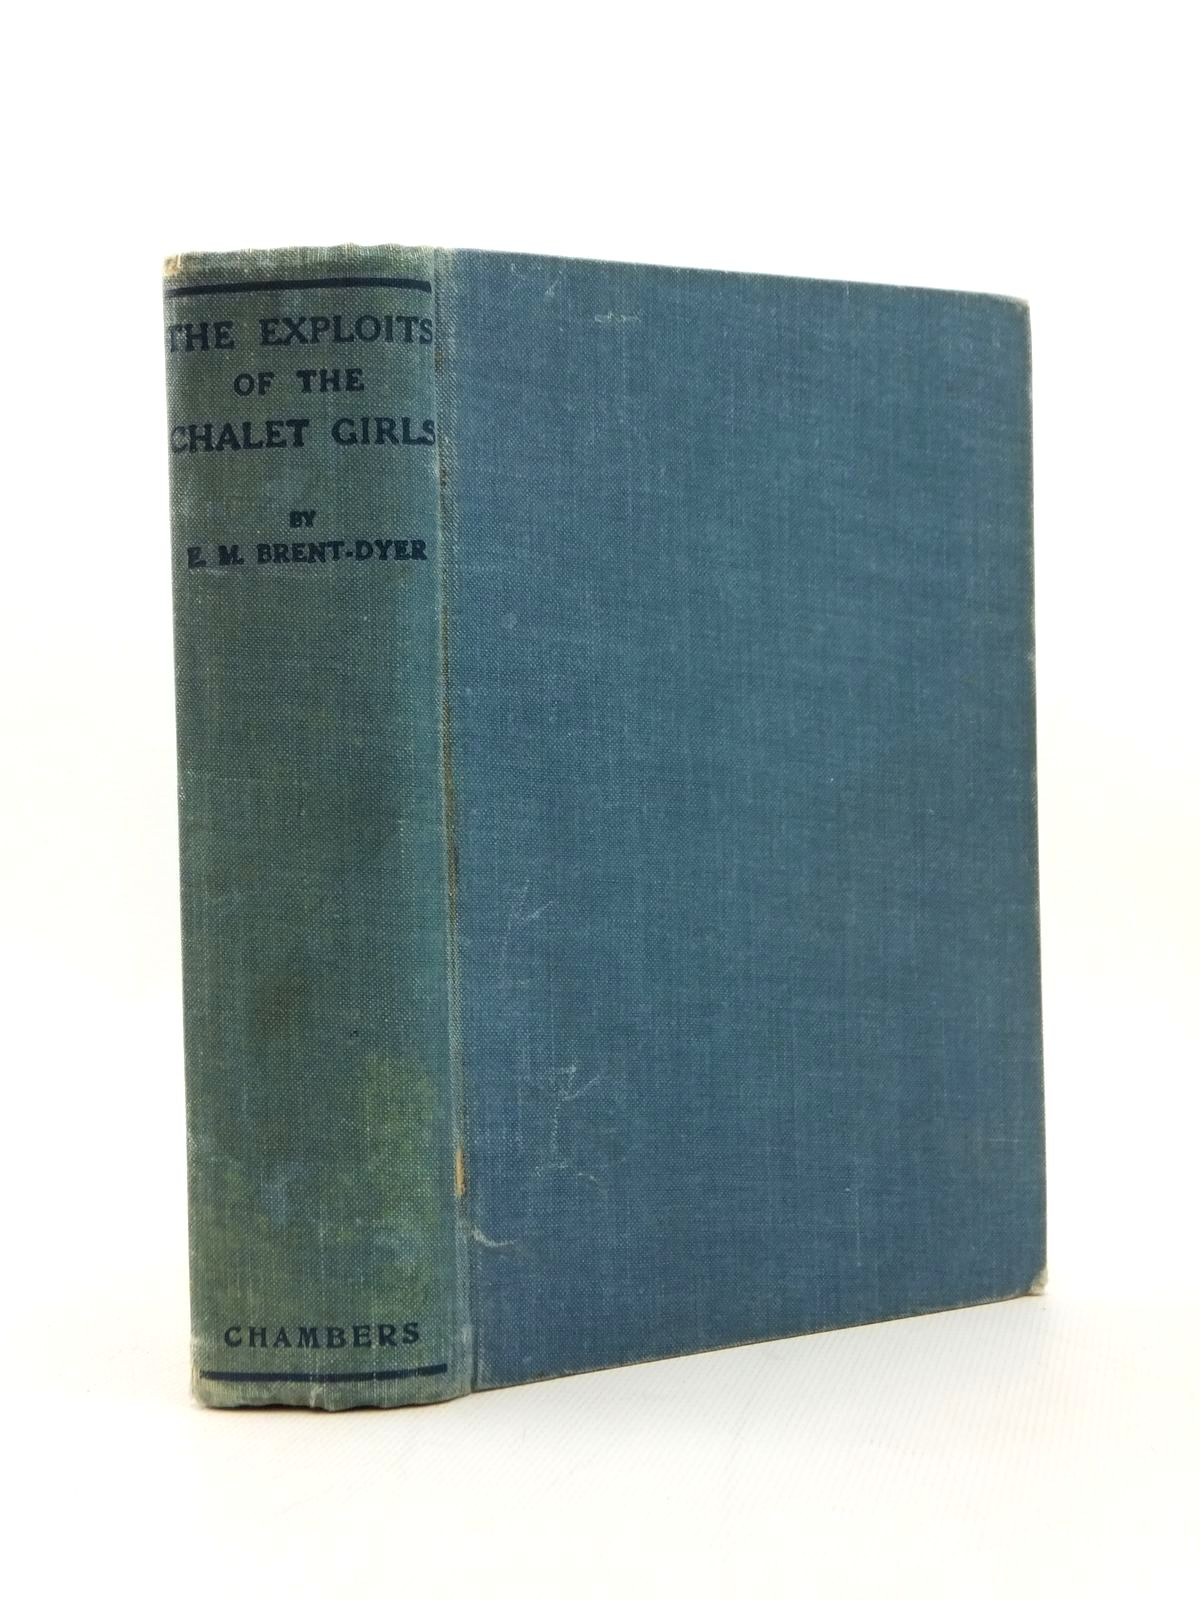 Photo of THE EXPLOITS OF THE CHALET GIRLS written by Brent-Dyer, Elinor M. illustrated by Brisley, Nina K. published by W. & R. Chambers Limited (STOCK CODE: 1316841)  for sale by Stella & Rose's Books